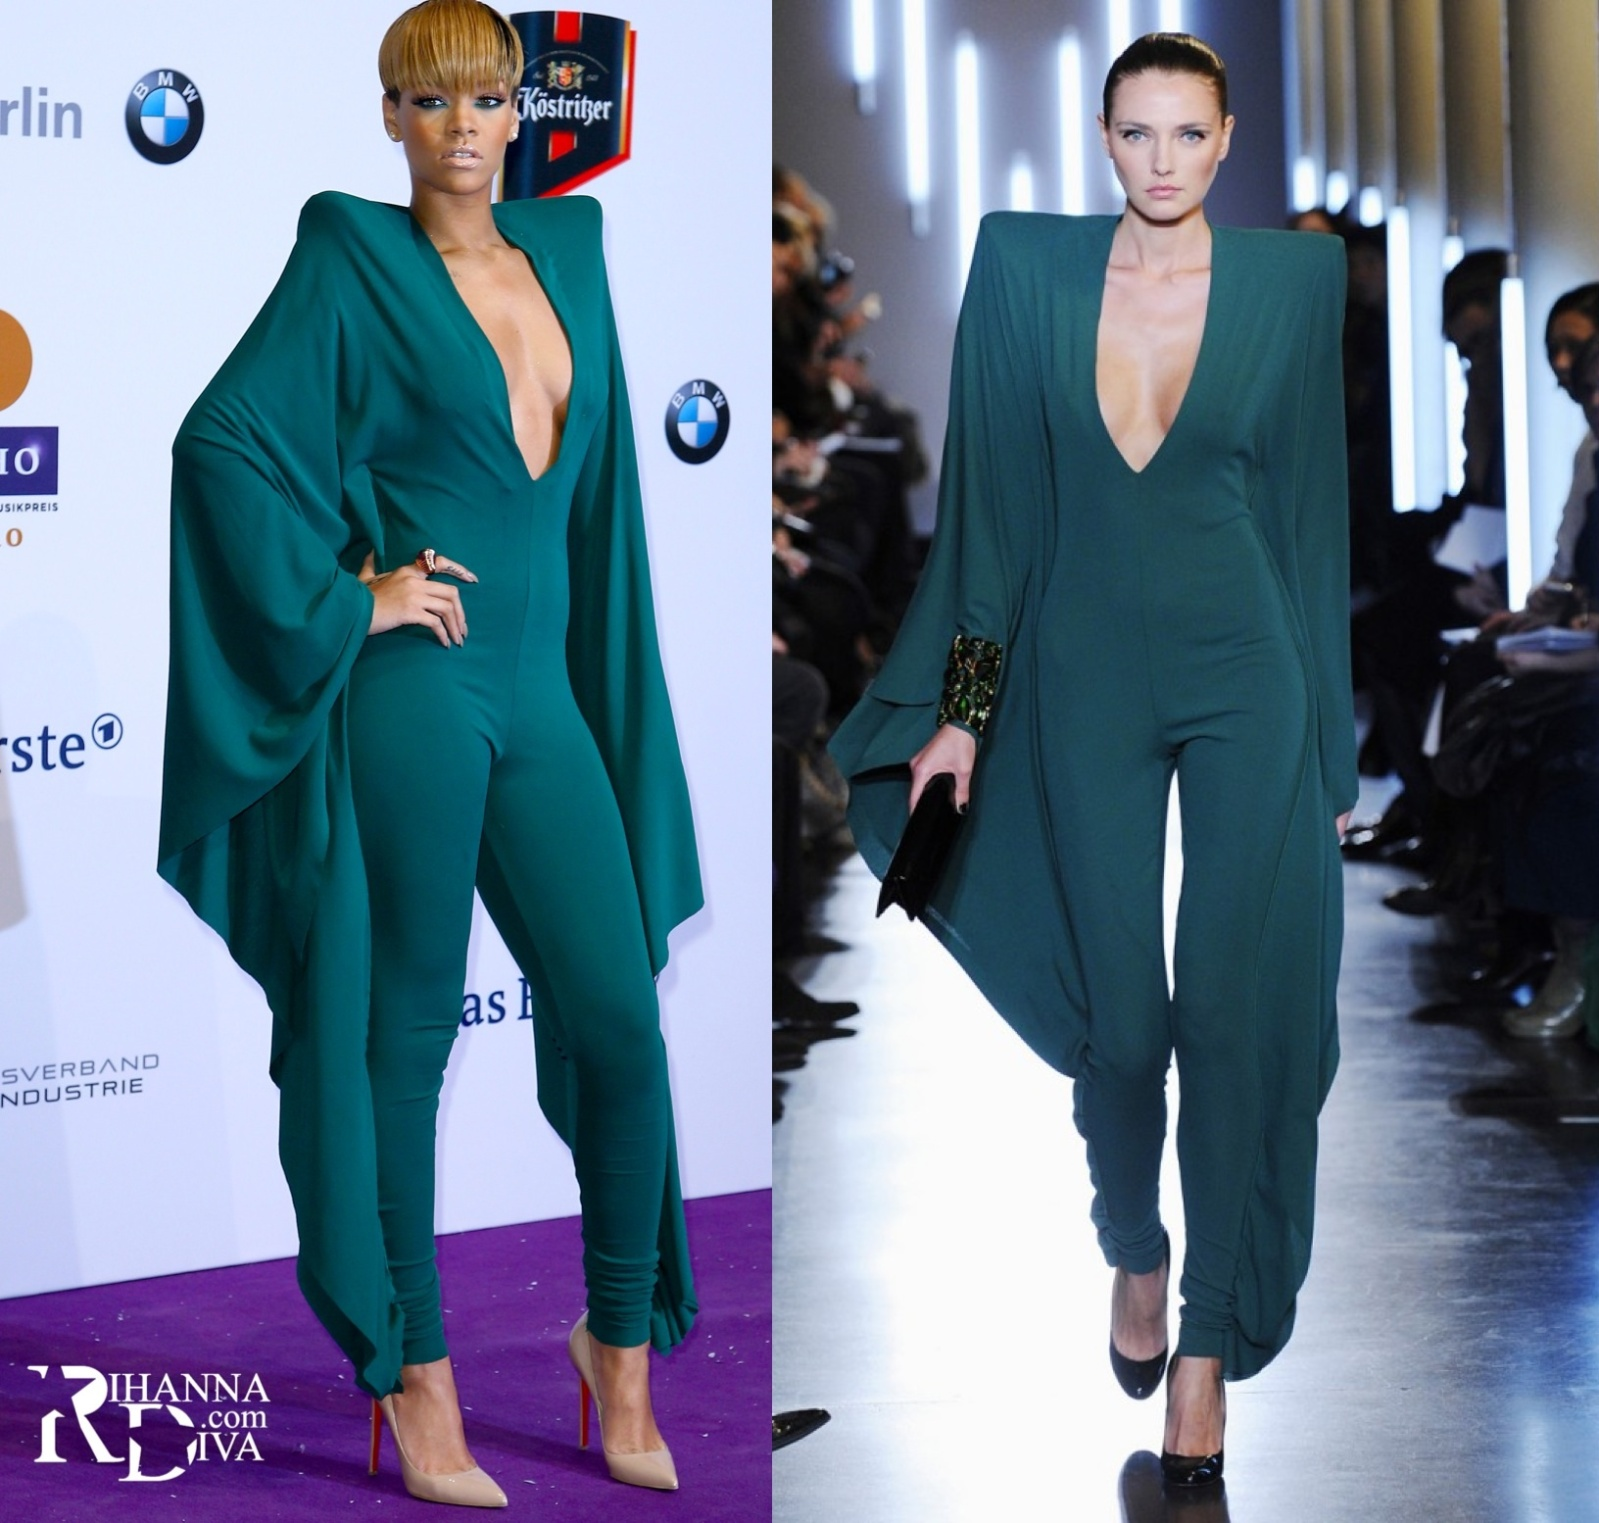 Rihanna in an Alexandre Vauthier jumpsuit at the 2010 Echo Awards in Berlin.